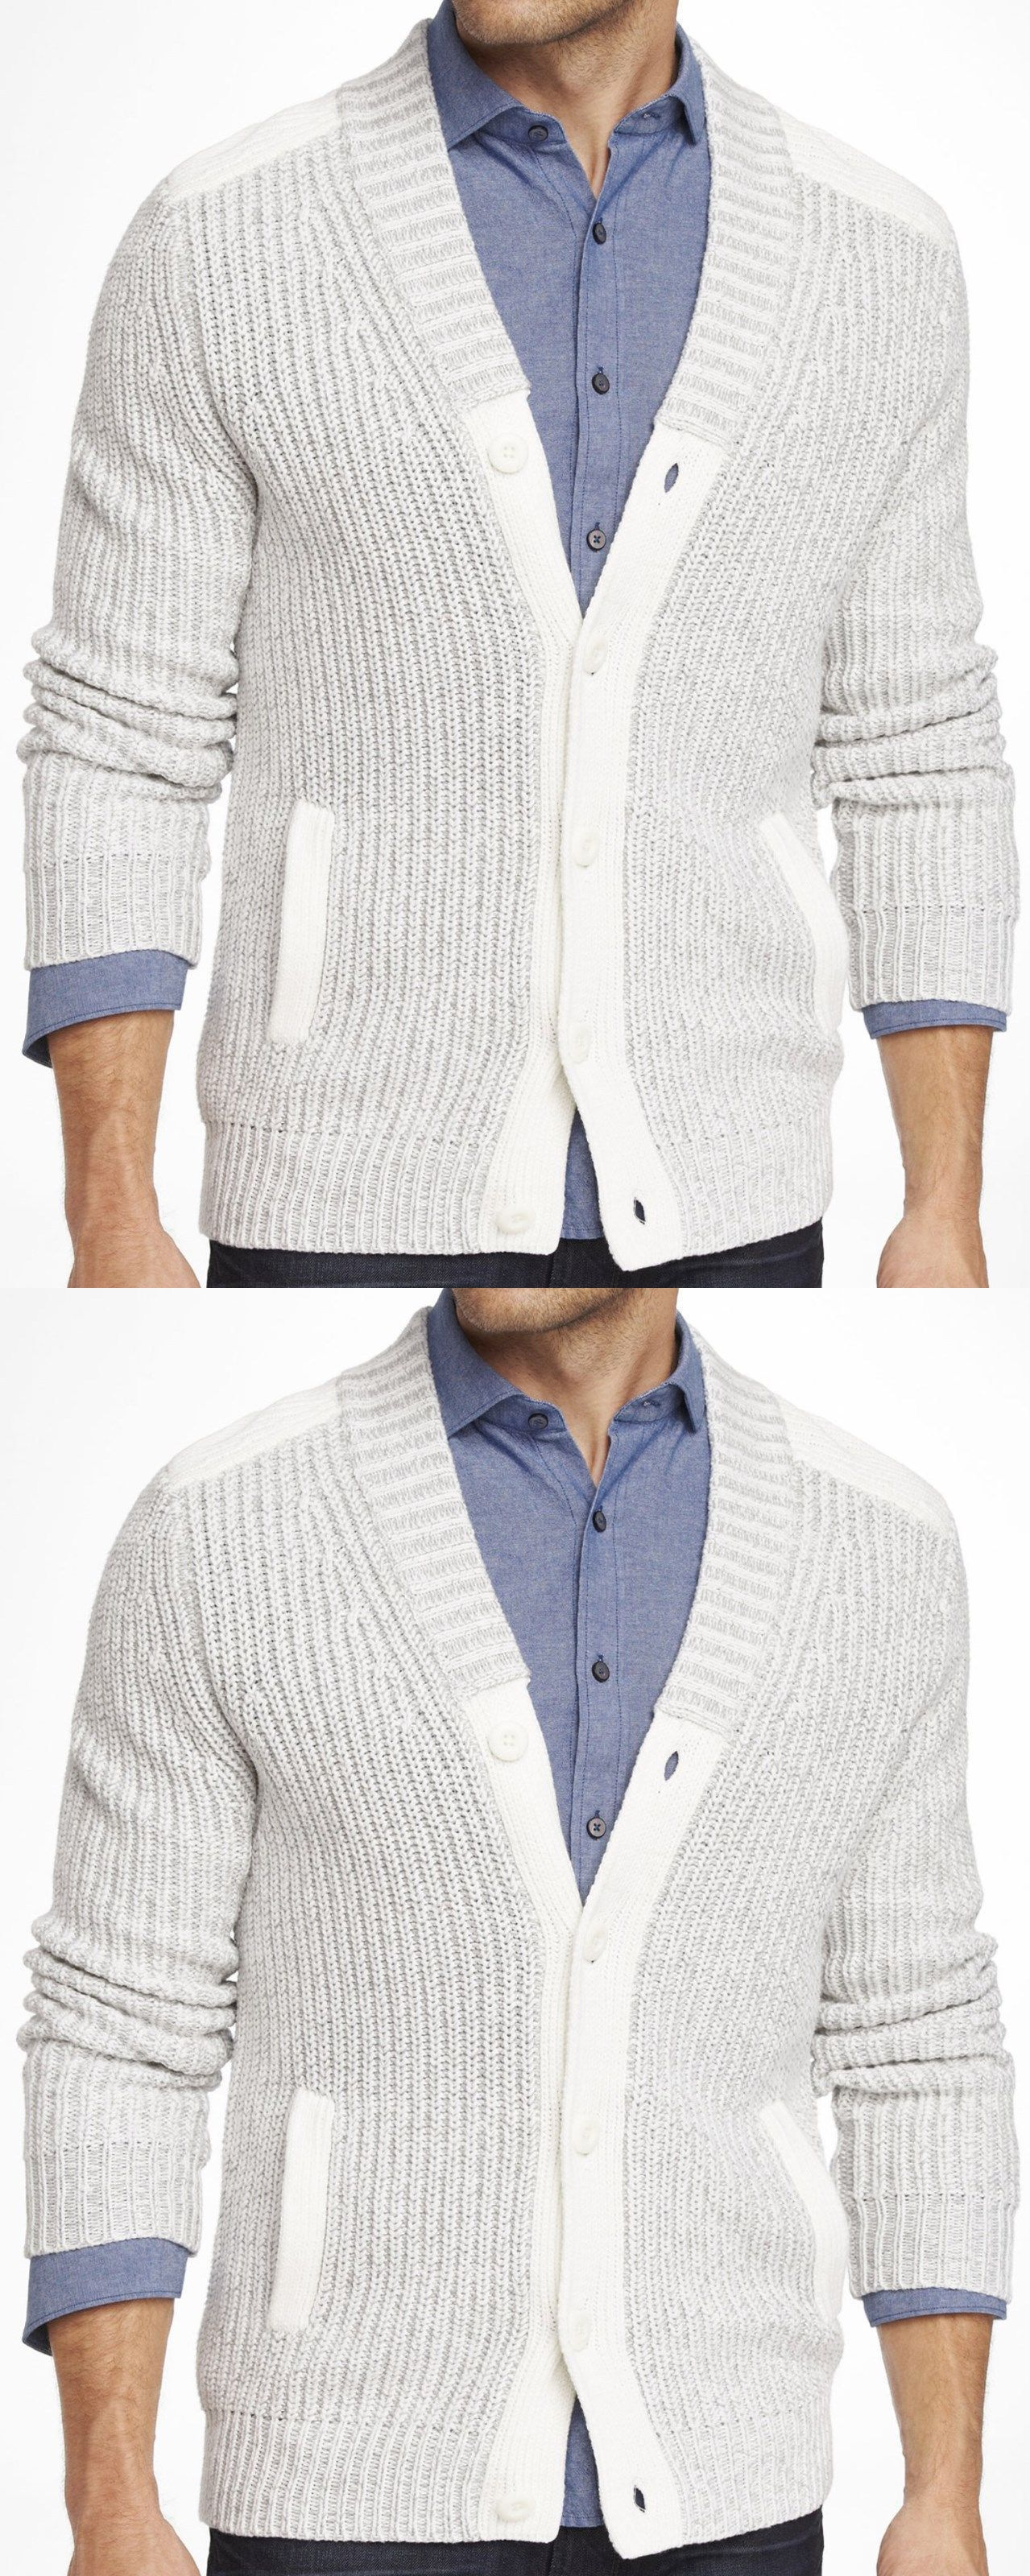 Sweaters 11484: New Express Men S Plaited Cotton Chunky Cardigan ...